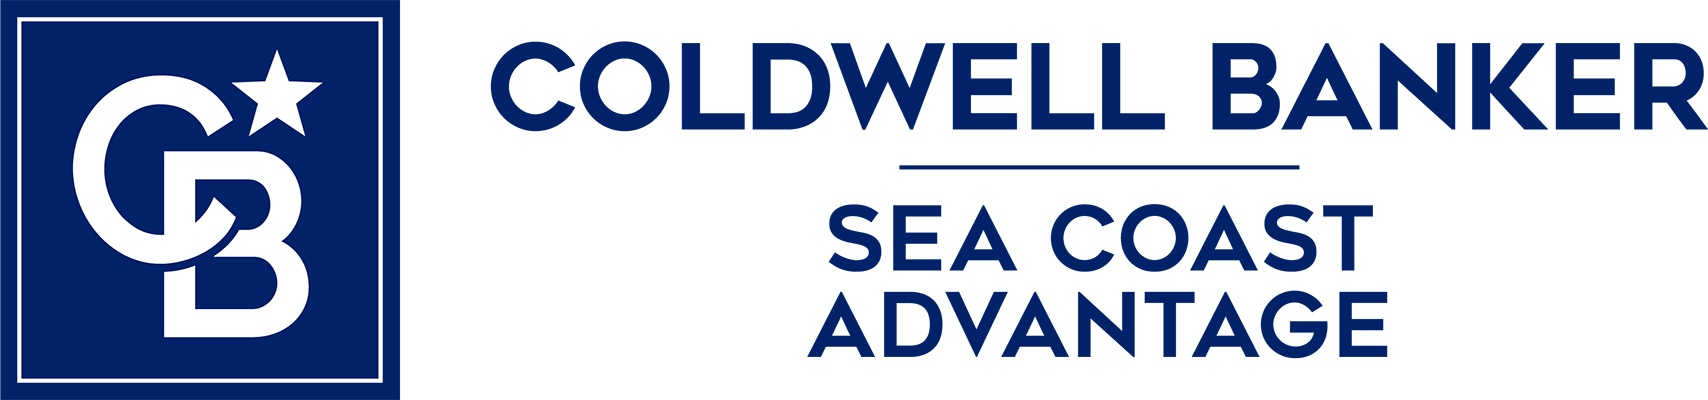 Shawn McClellan - Coldwell Banker Sea Coast Advantage Realty